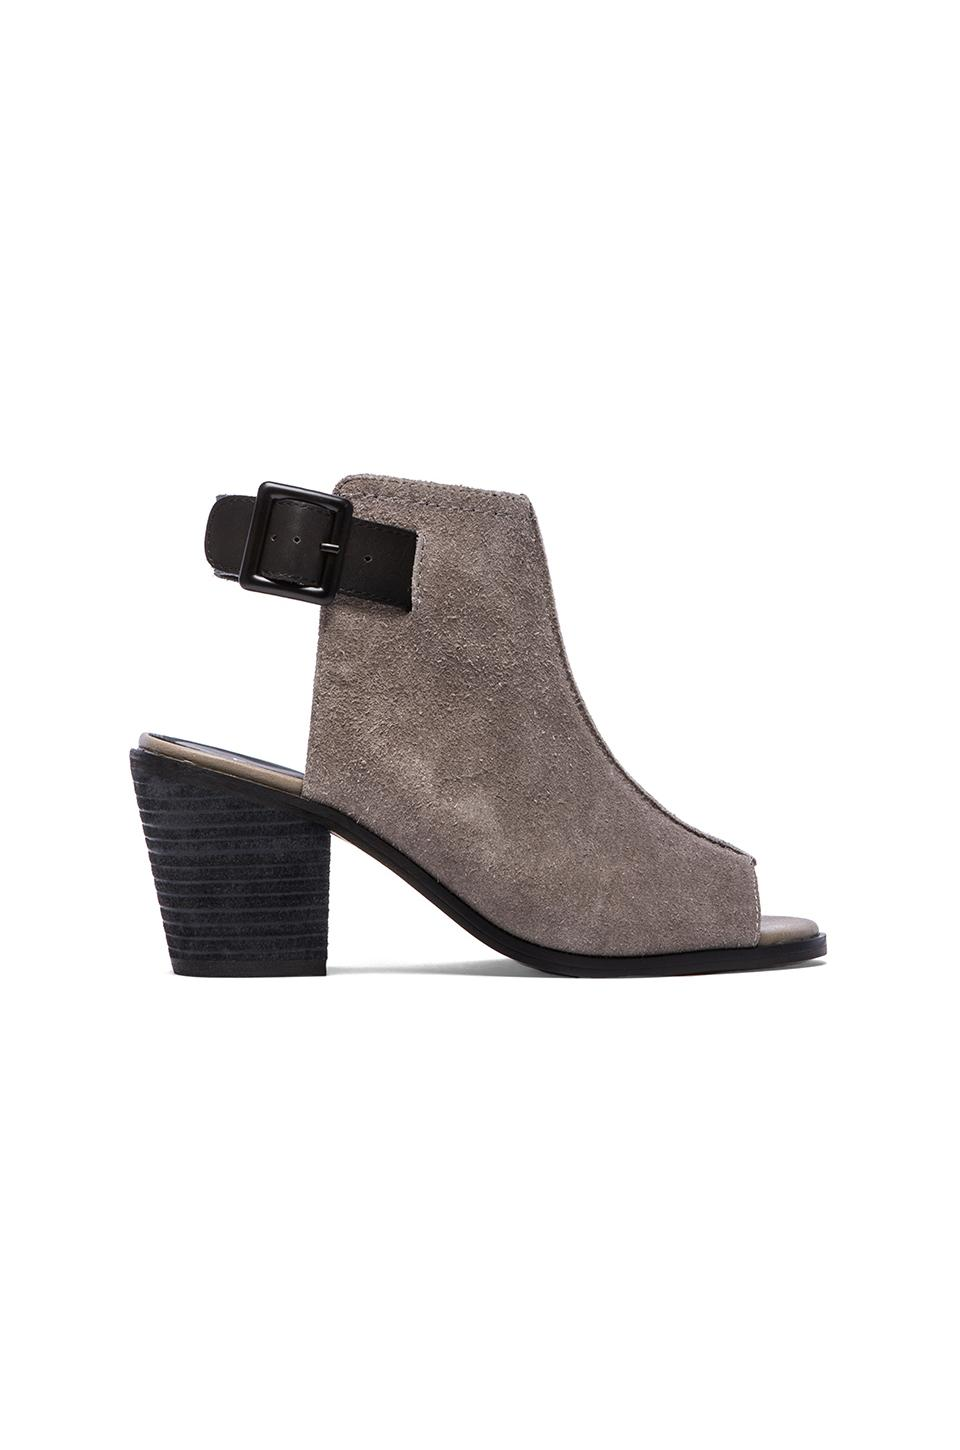 Kelsi Dagger Keira Bootie in Taupe & Black